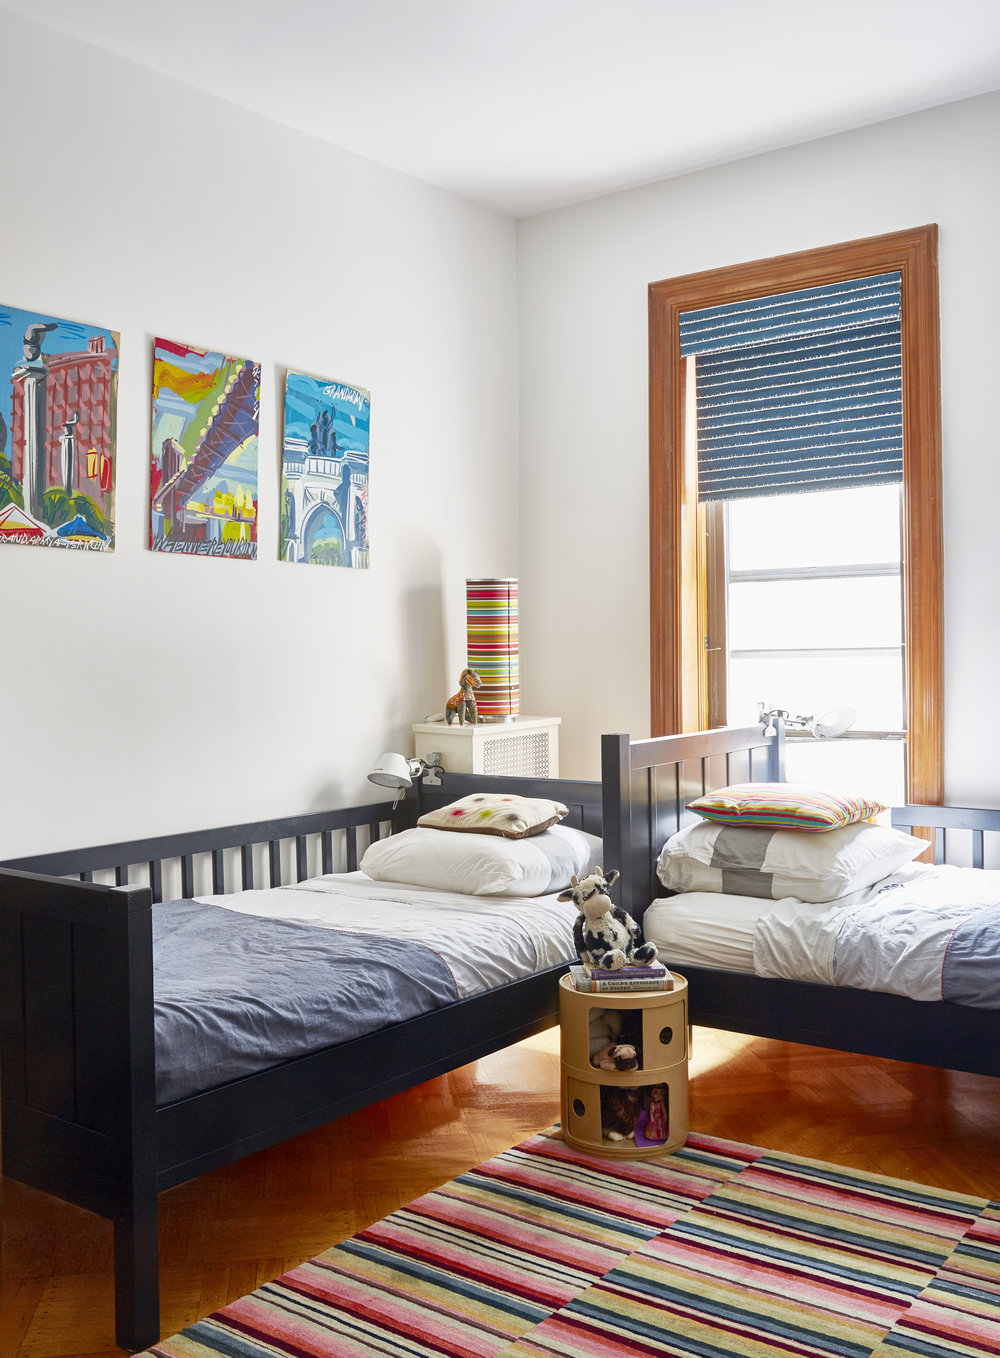 Park-Slope-Shared-Kids-Bedroom-Best-Friends-JMorrisDesign-Brooklyn-Interior-Designer.jpg